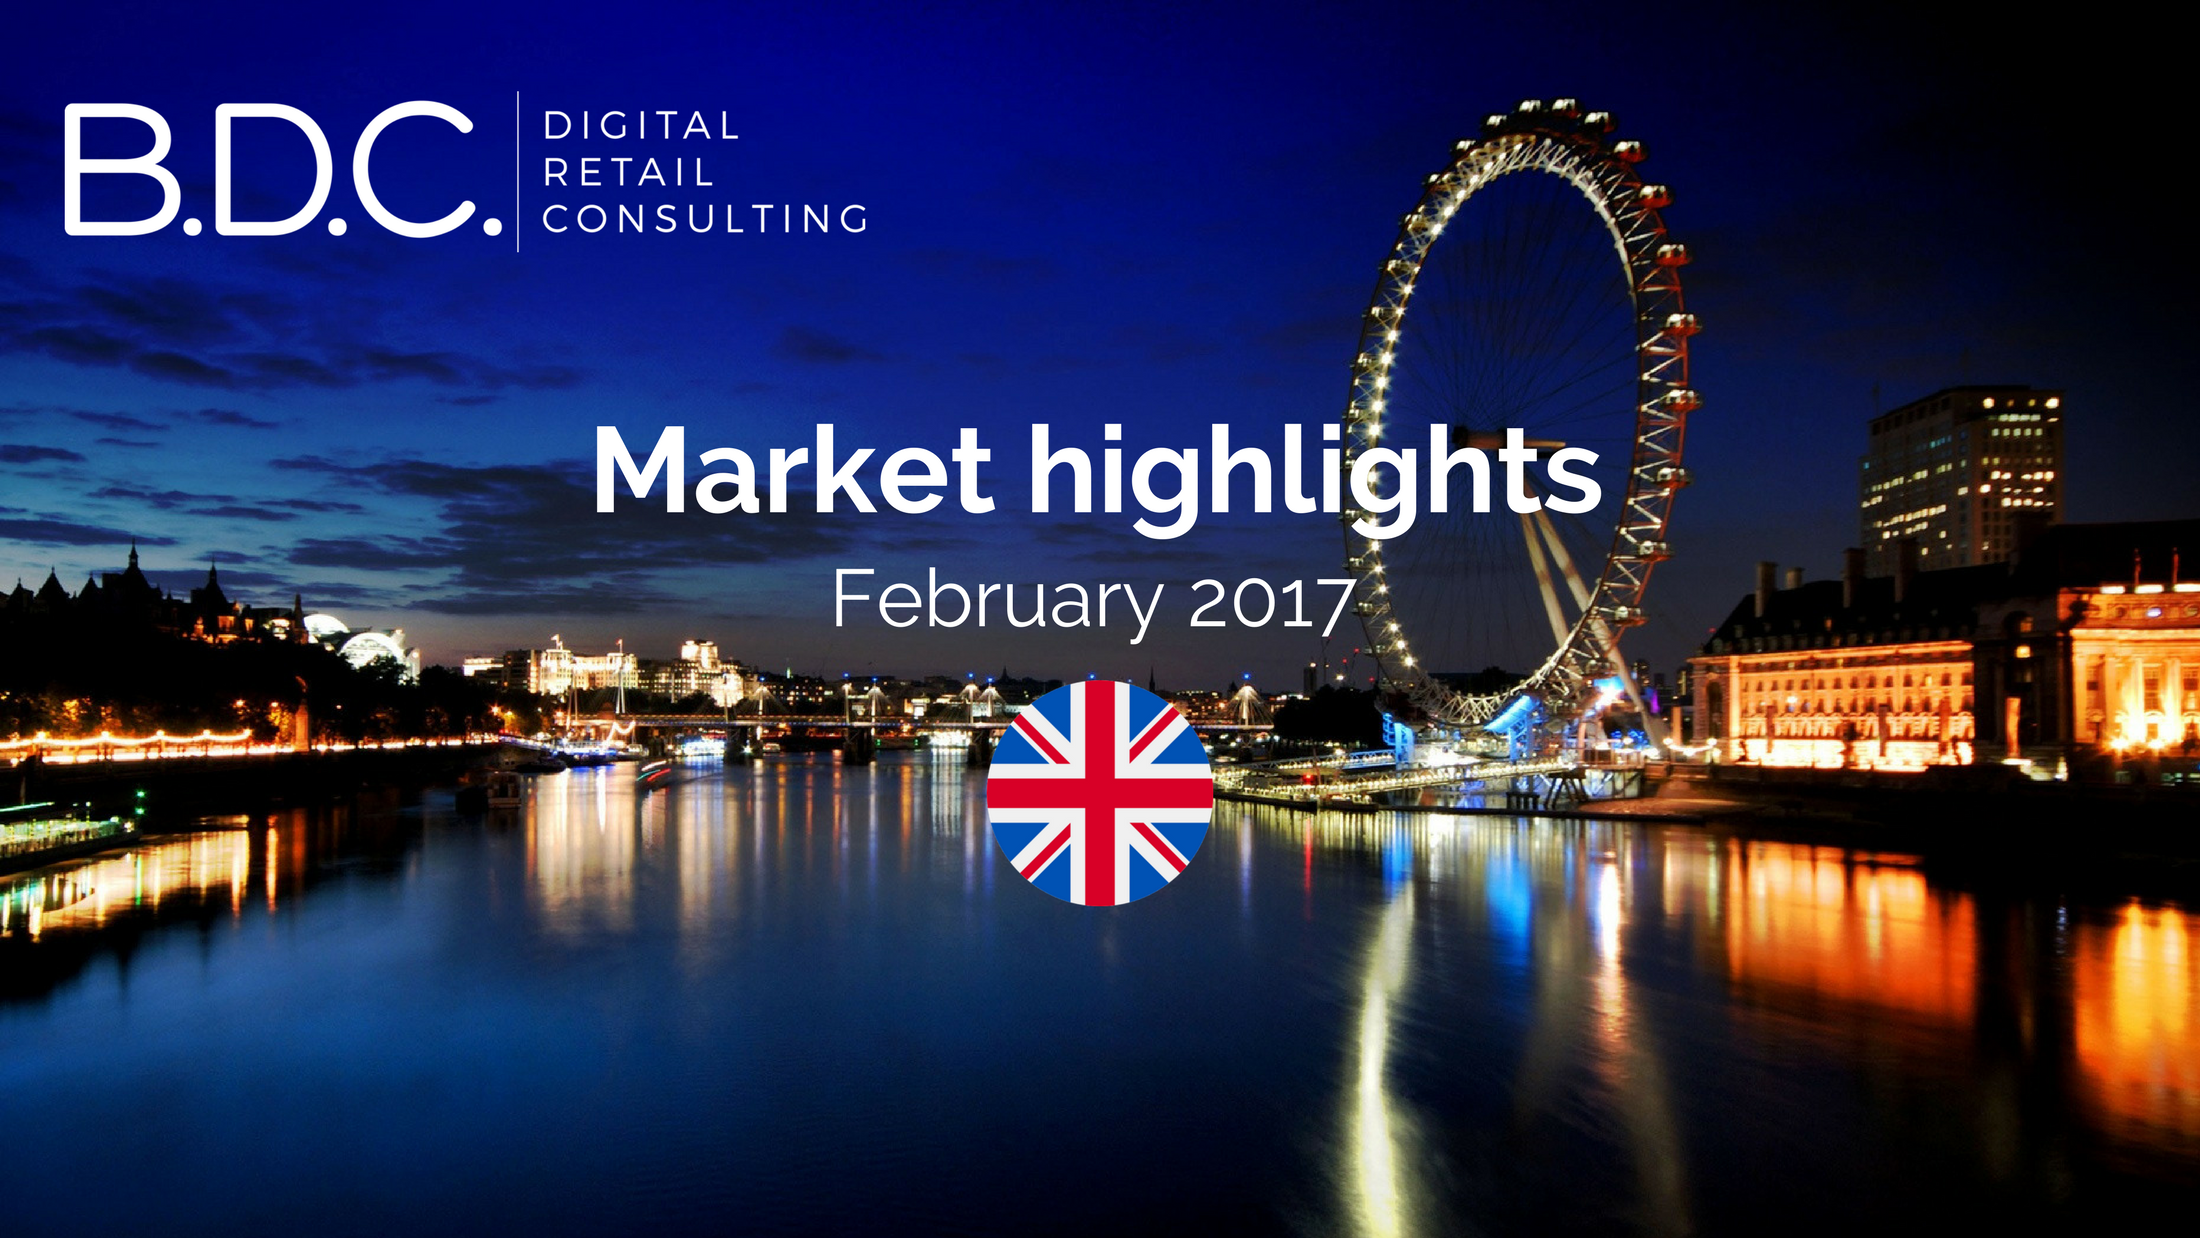 Trends News 7 - Market highlights - February 2017